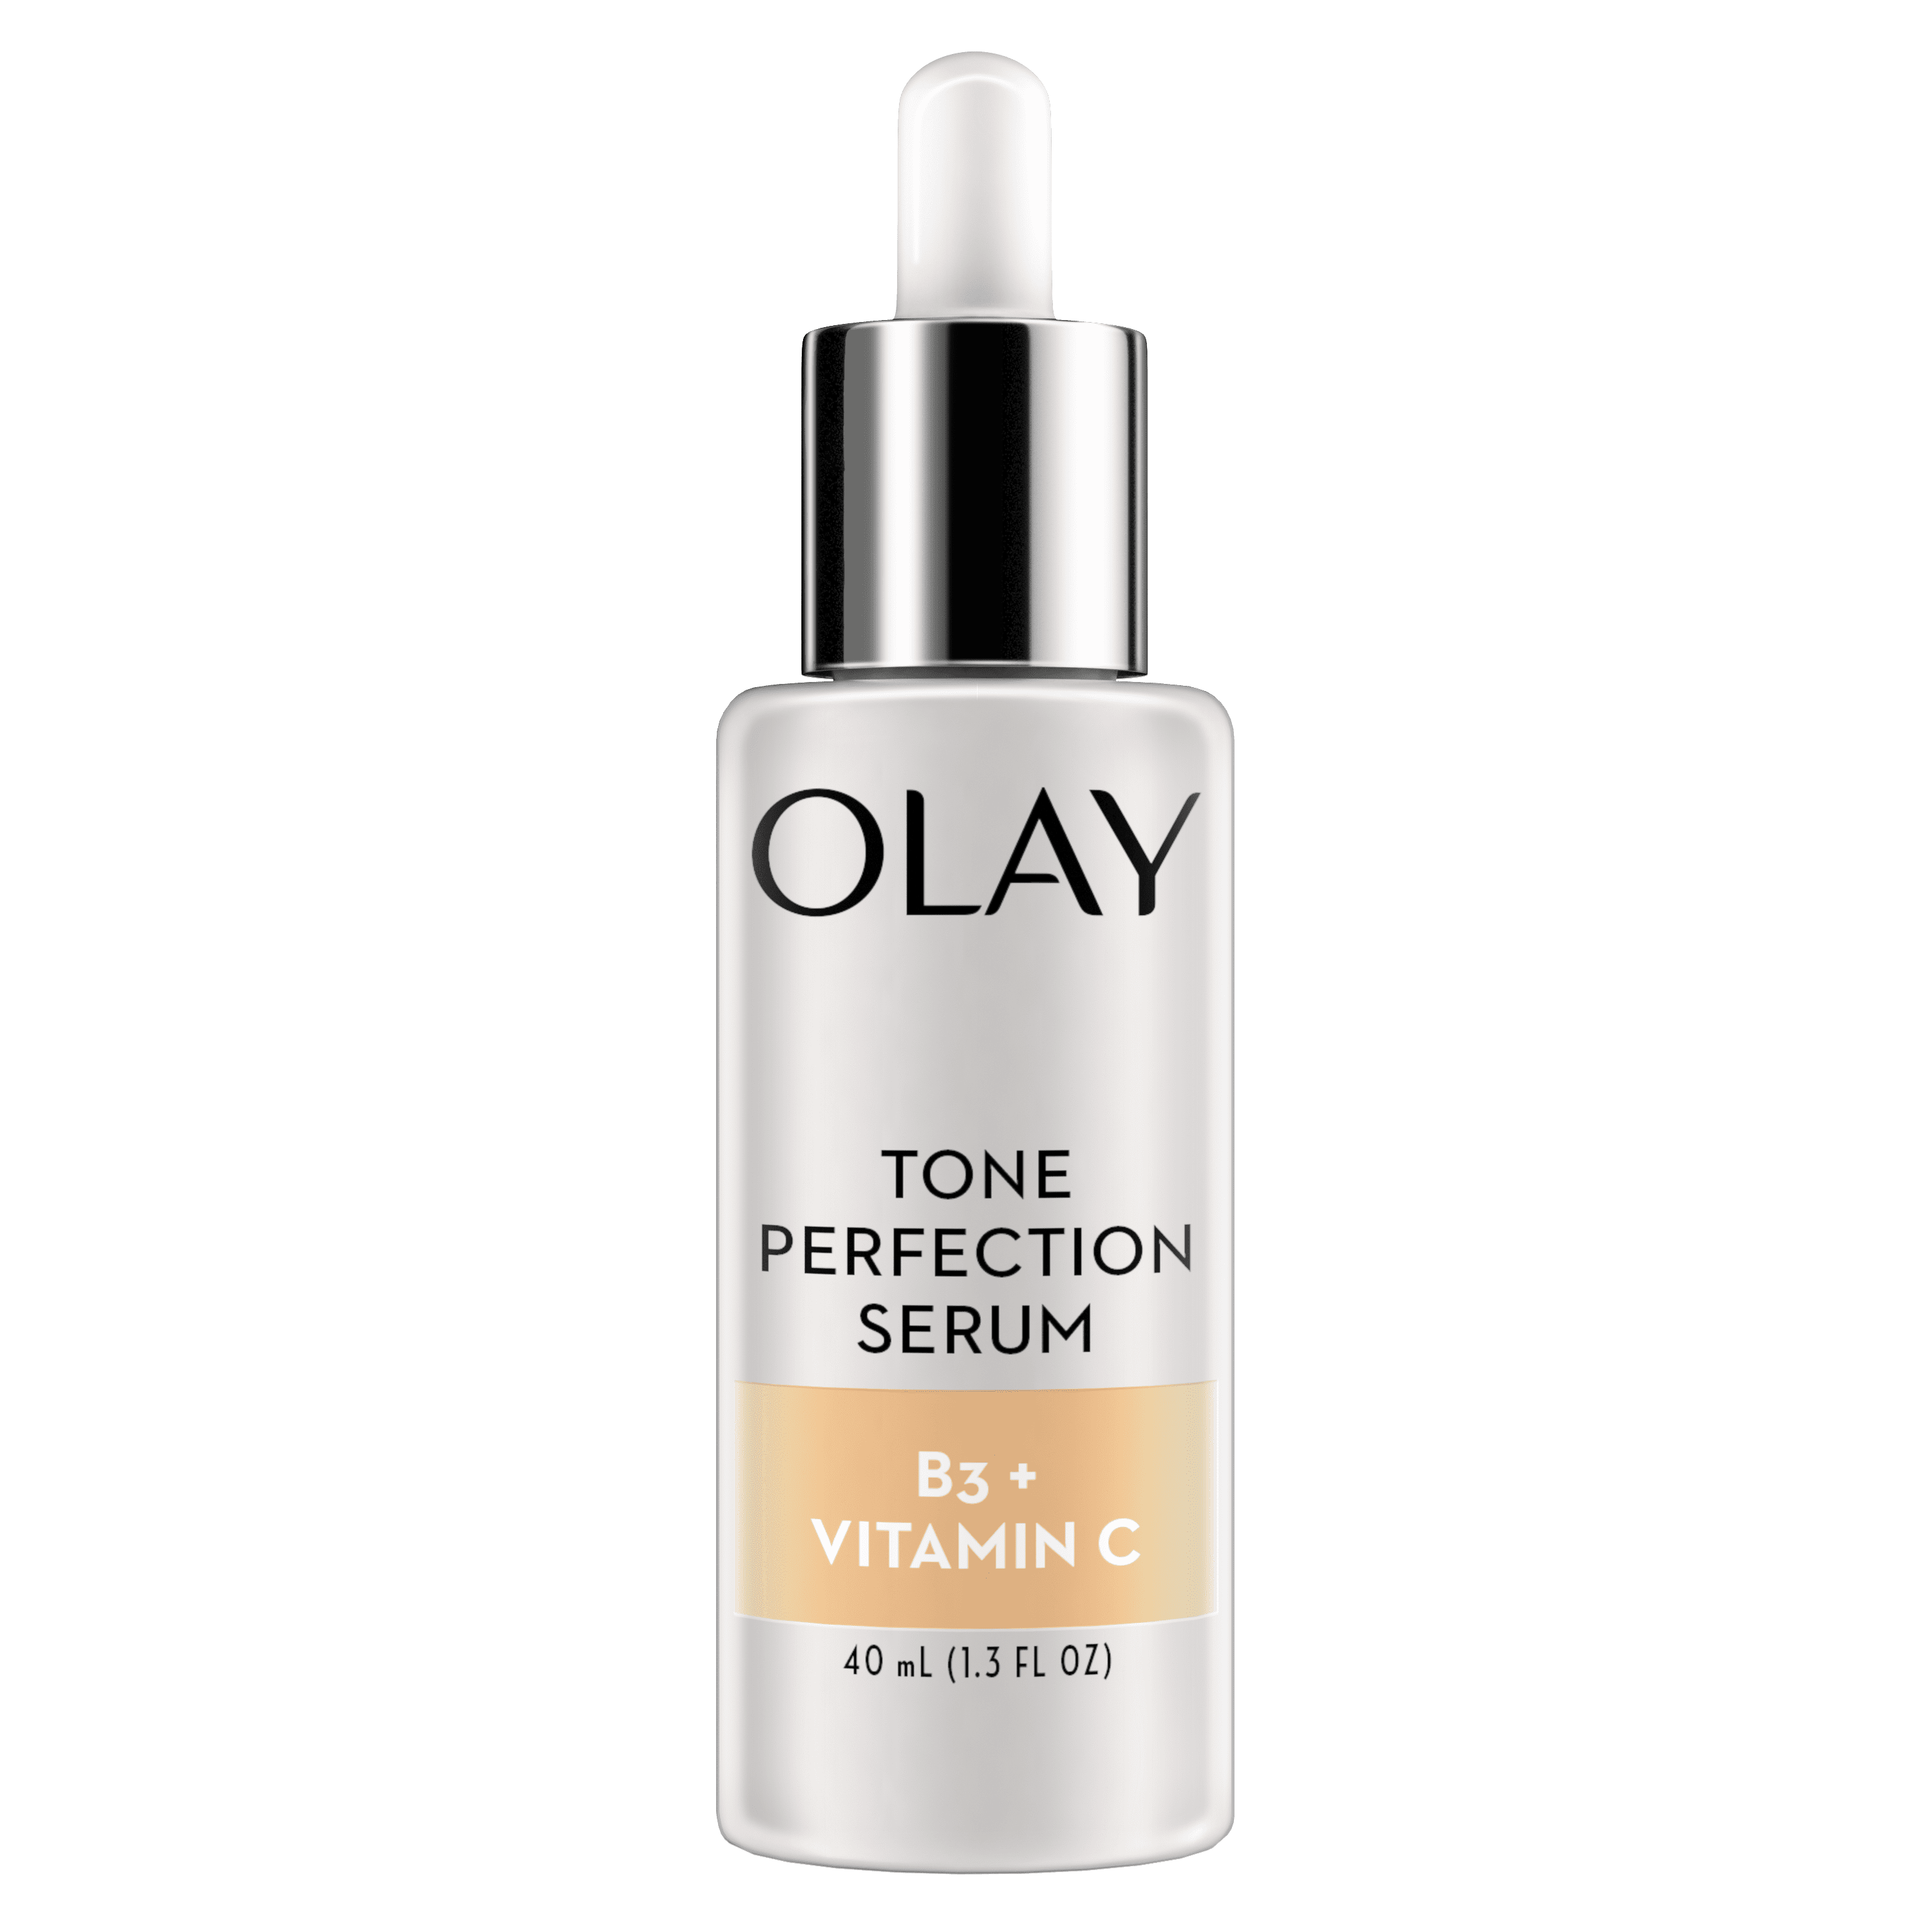 Olay Tone Perfection Serum with Vitamin B3 Vitamin C 40 mL